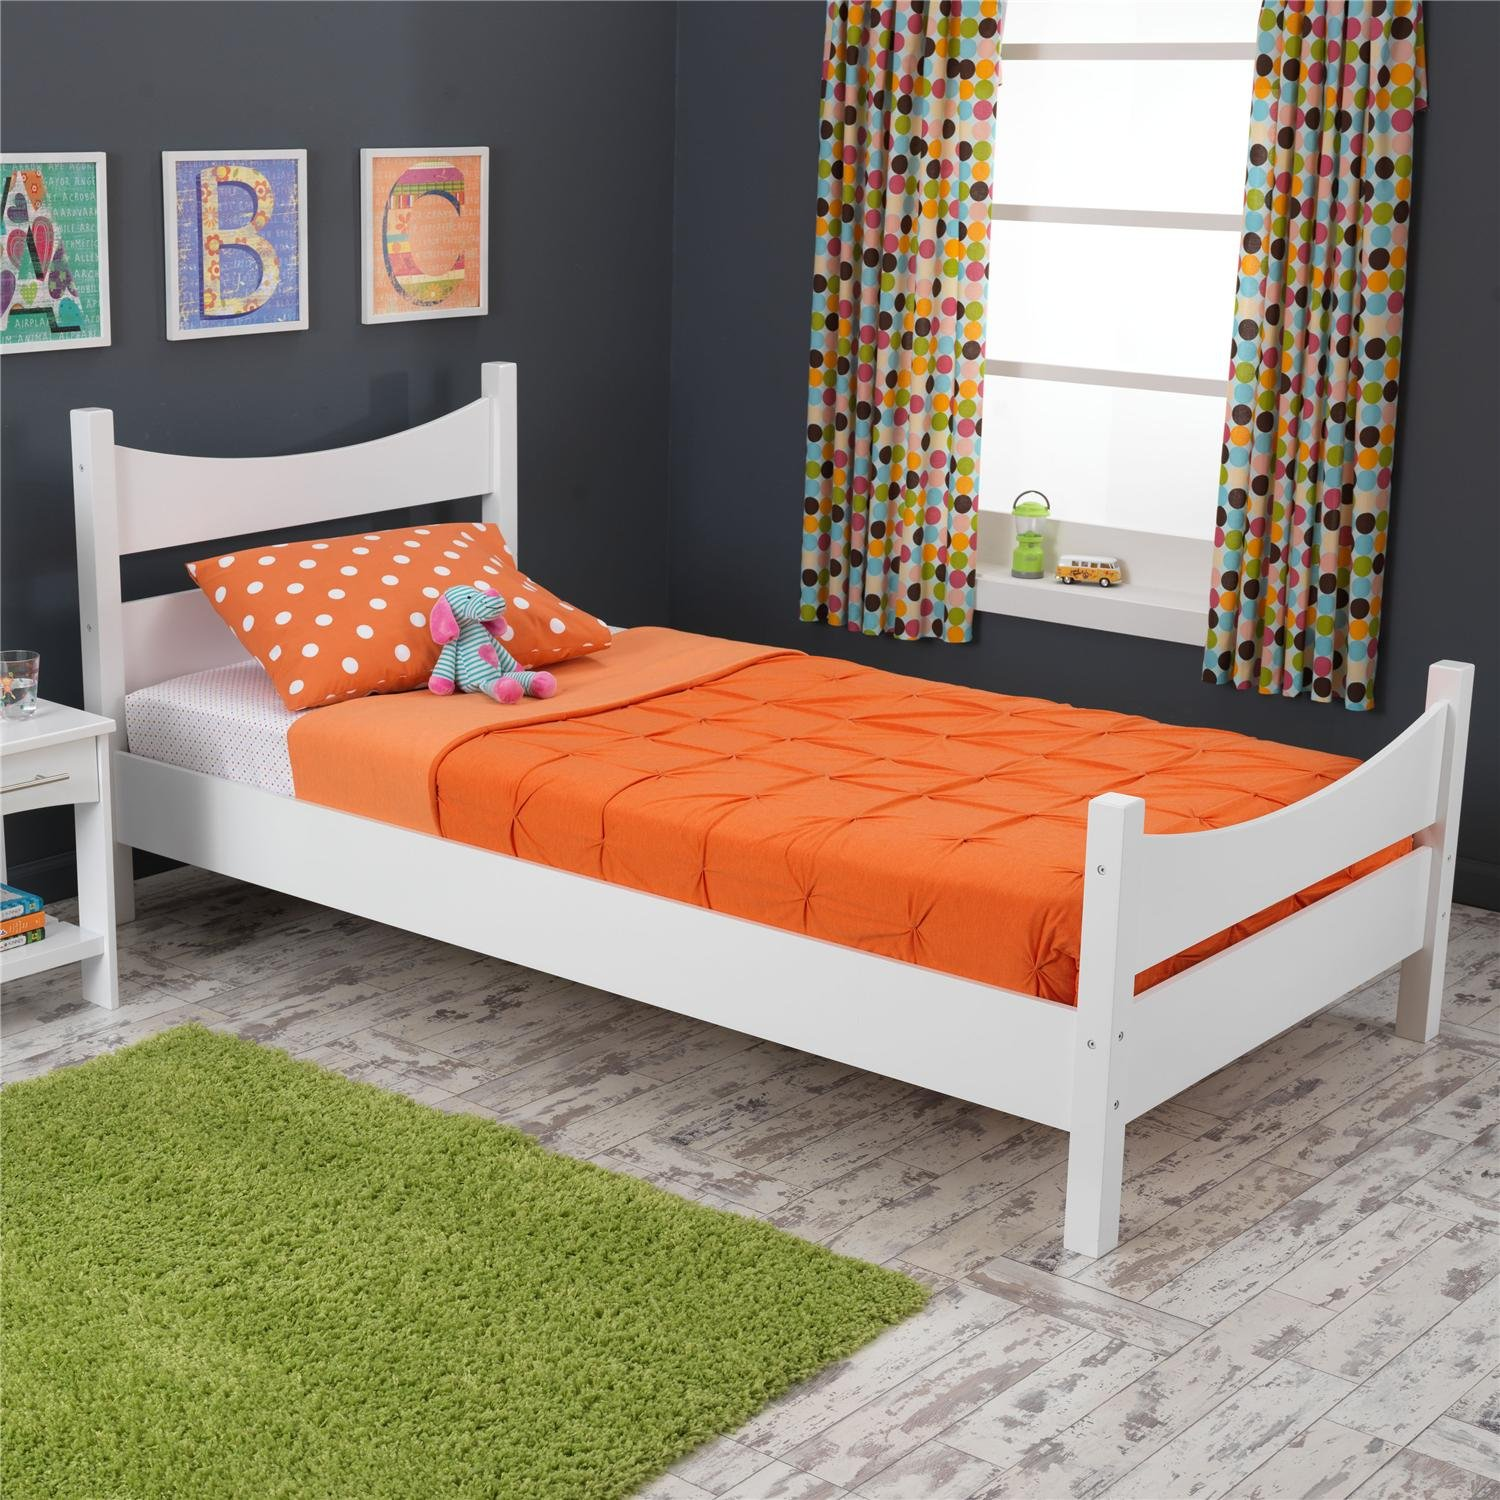 size best com of underneath queen platform frame tiara trundle childrens twin rails frames beds ikea king with boy girl single australia canada mates headboards shop and boys mattress kids toys toddler wood for storage set full headboard low solid amazon bookcase girls cheap bed